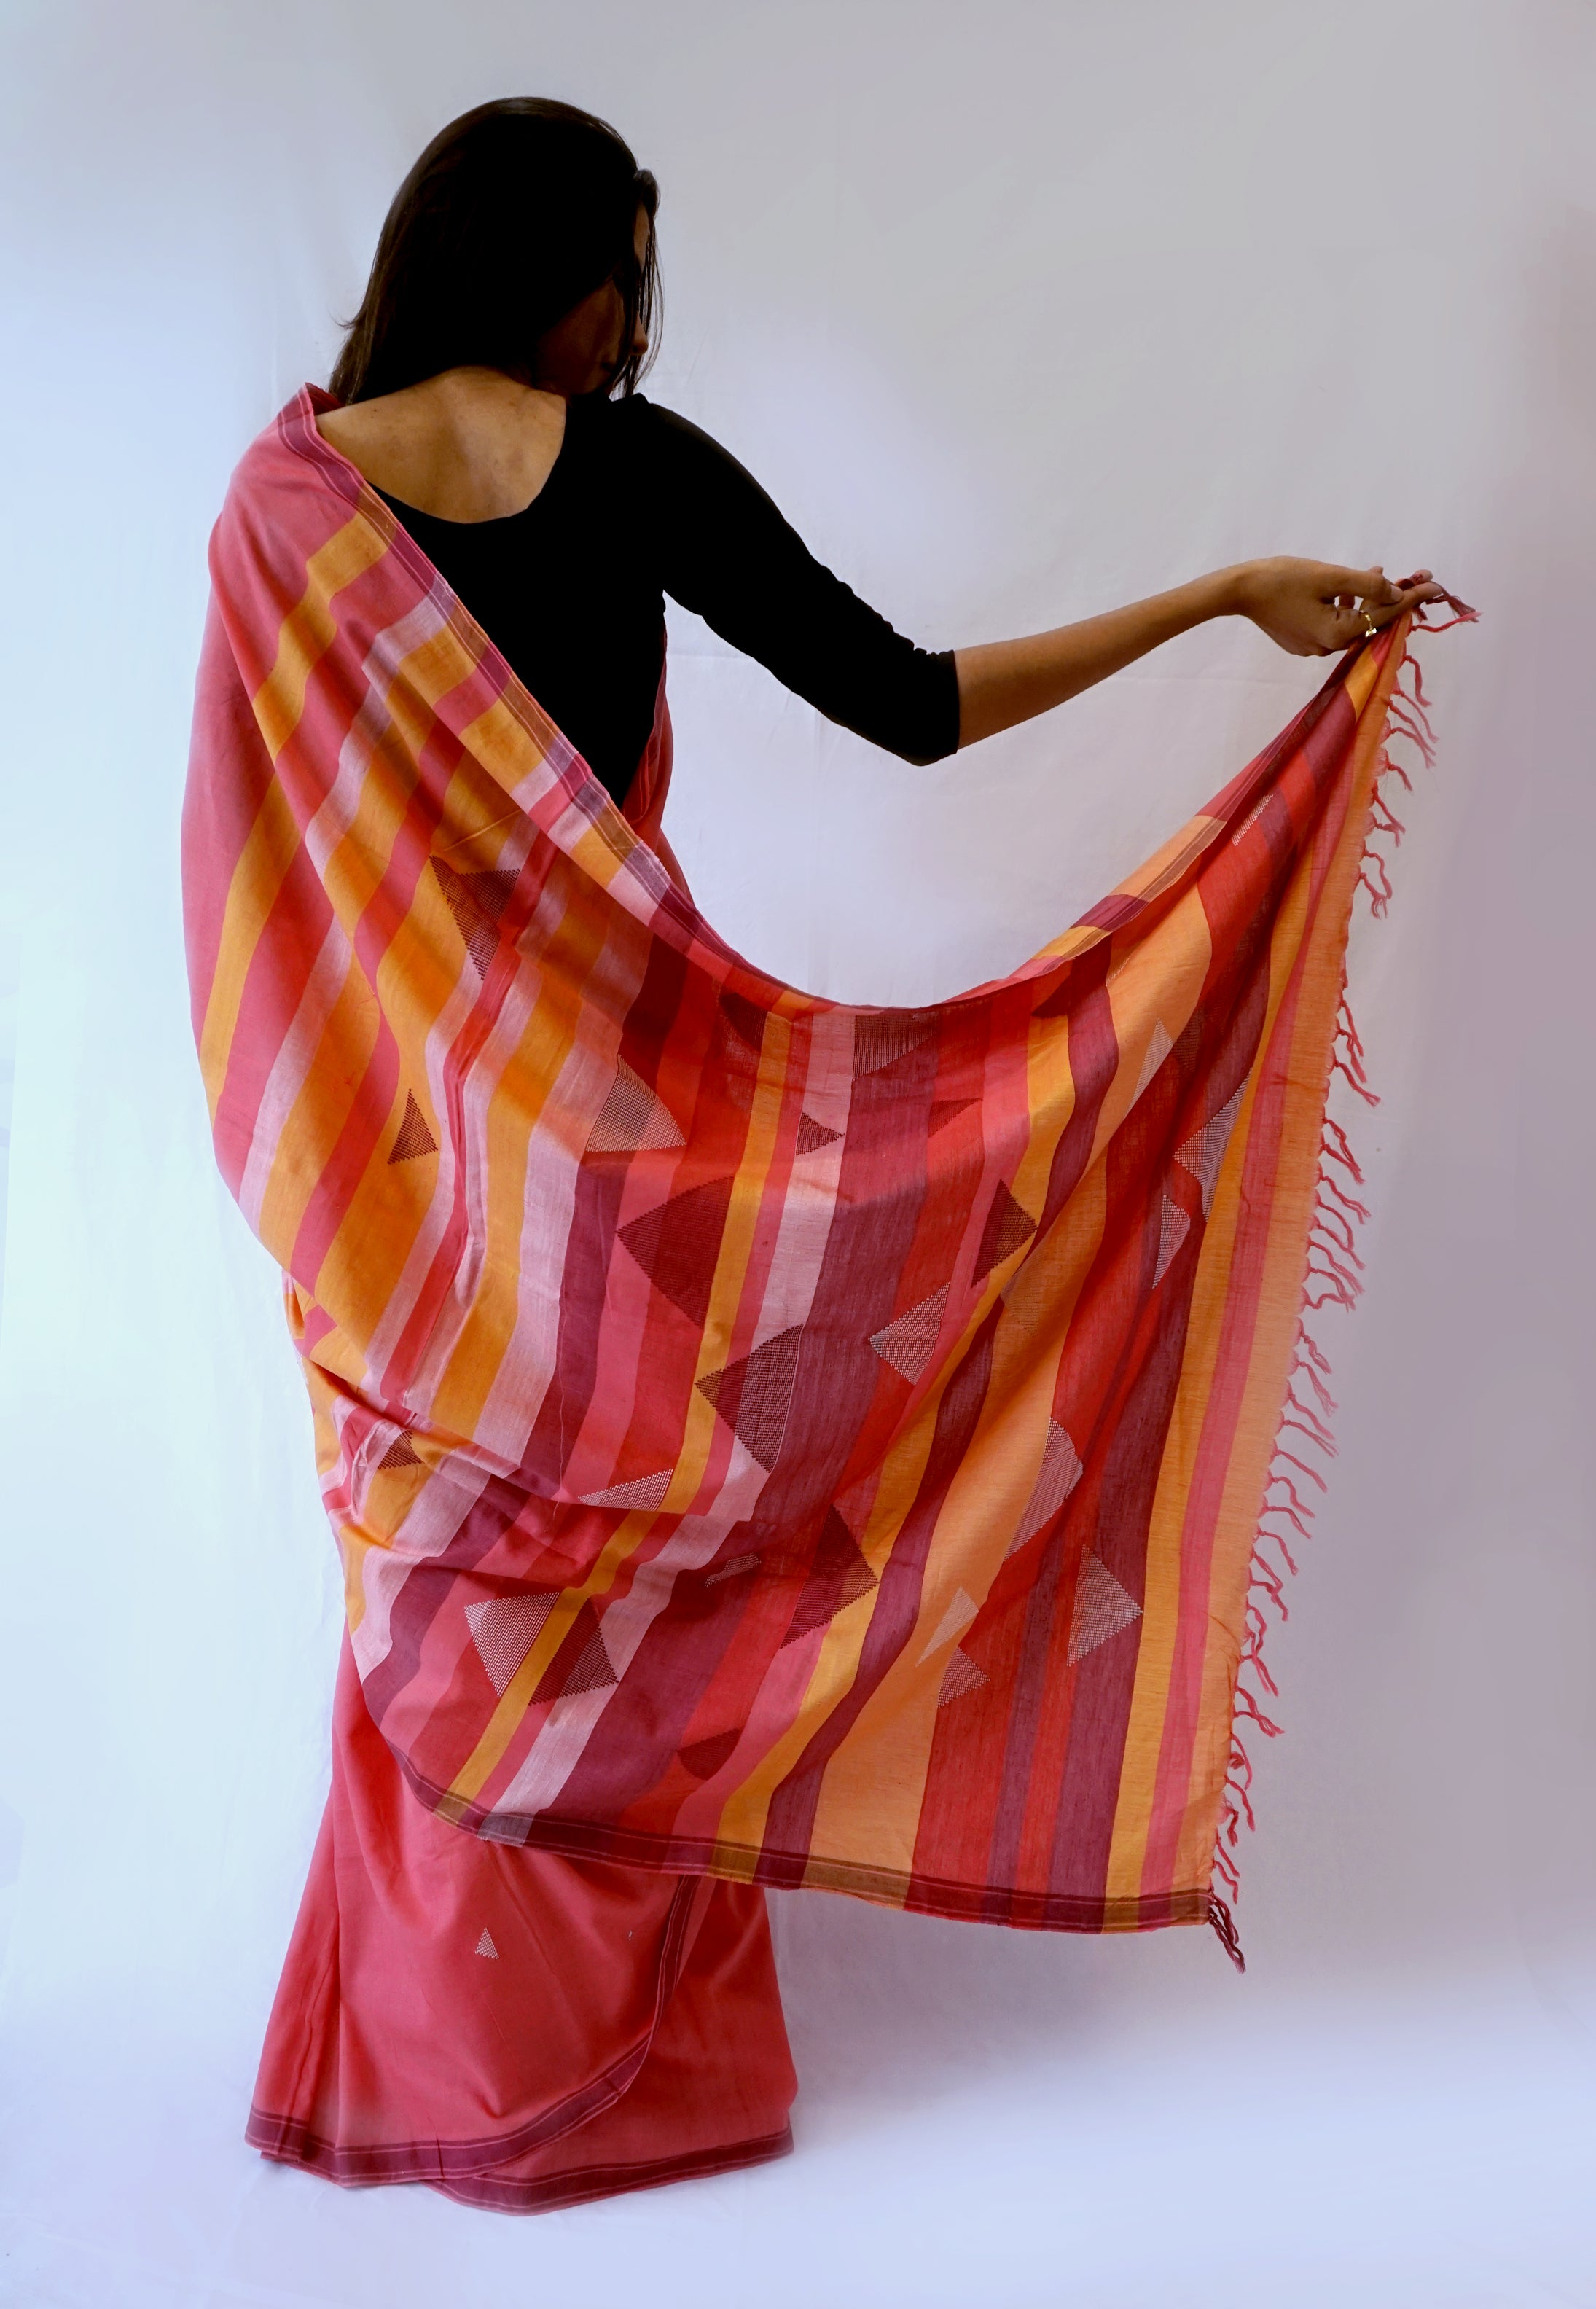 TRIANGLE SAREE -Pink, Orange, Maroon Handwoven Cotton Saree